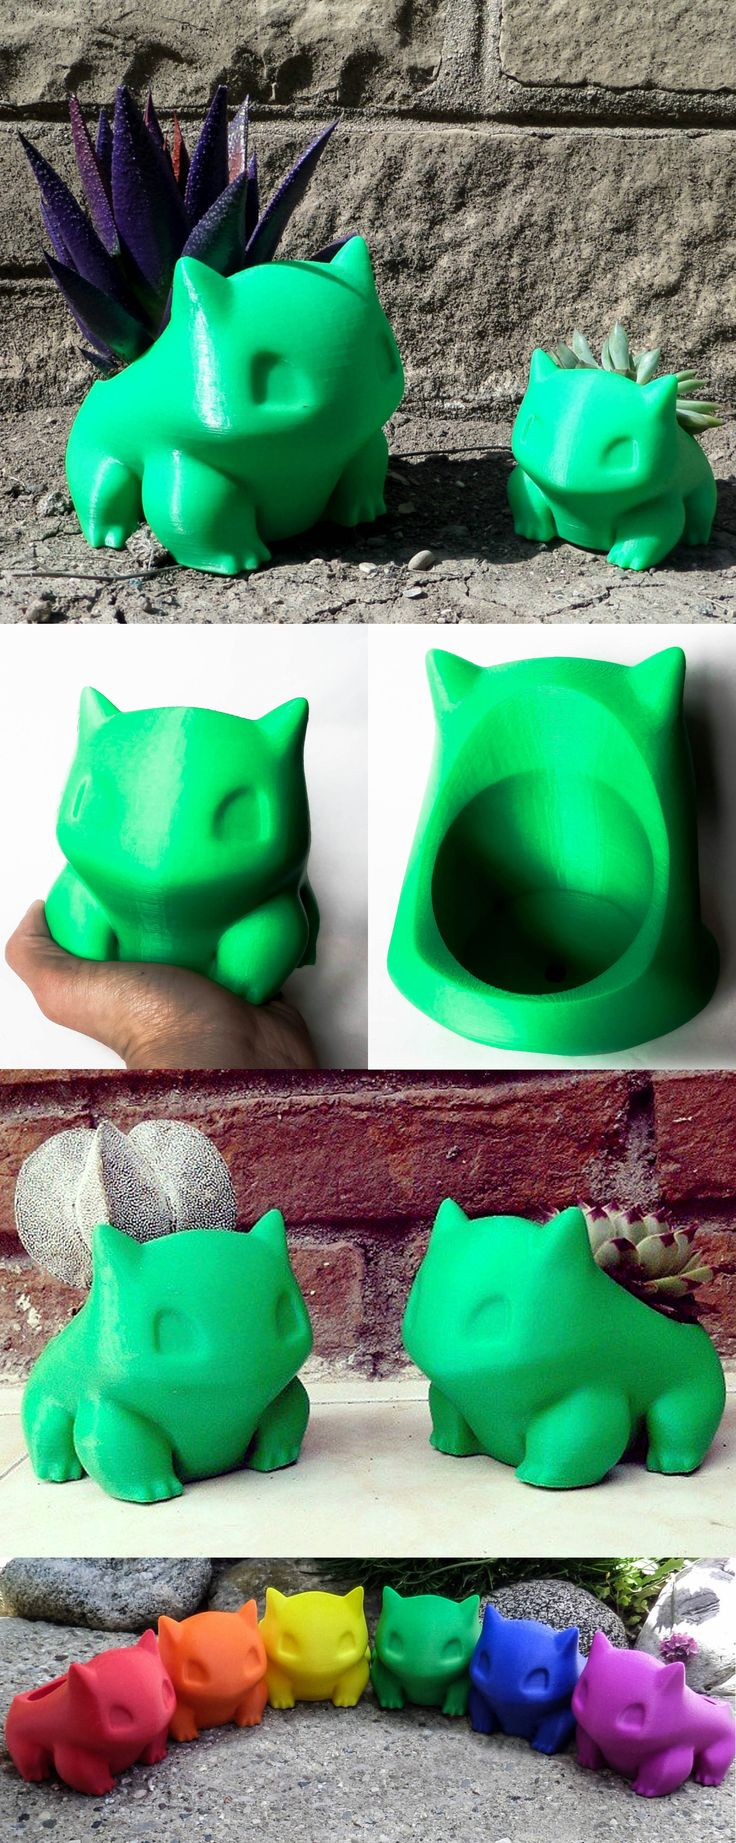 Help Bulbasaur evolve with the flower of your choice in these fantastic 3D-printed Pokemon planters. Bulbasaur will create the ideal companion as he sits on your desktop or window sill, where you can help and watch his bulb flourish. #pokemon #bulbasaur #kawaii